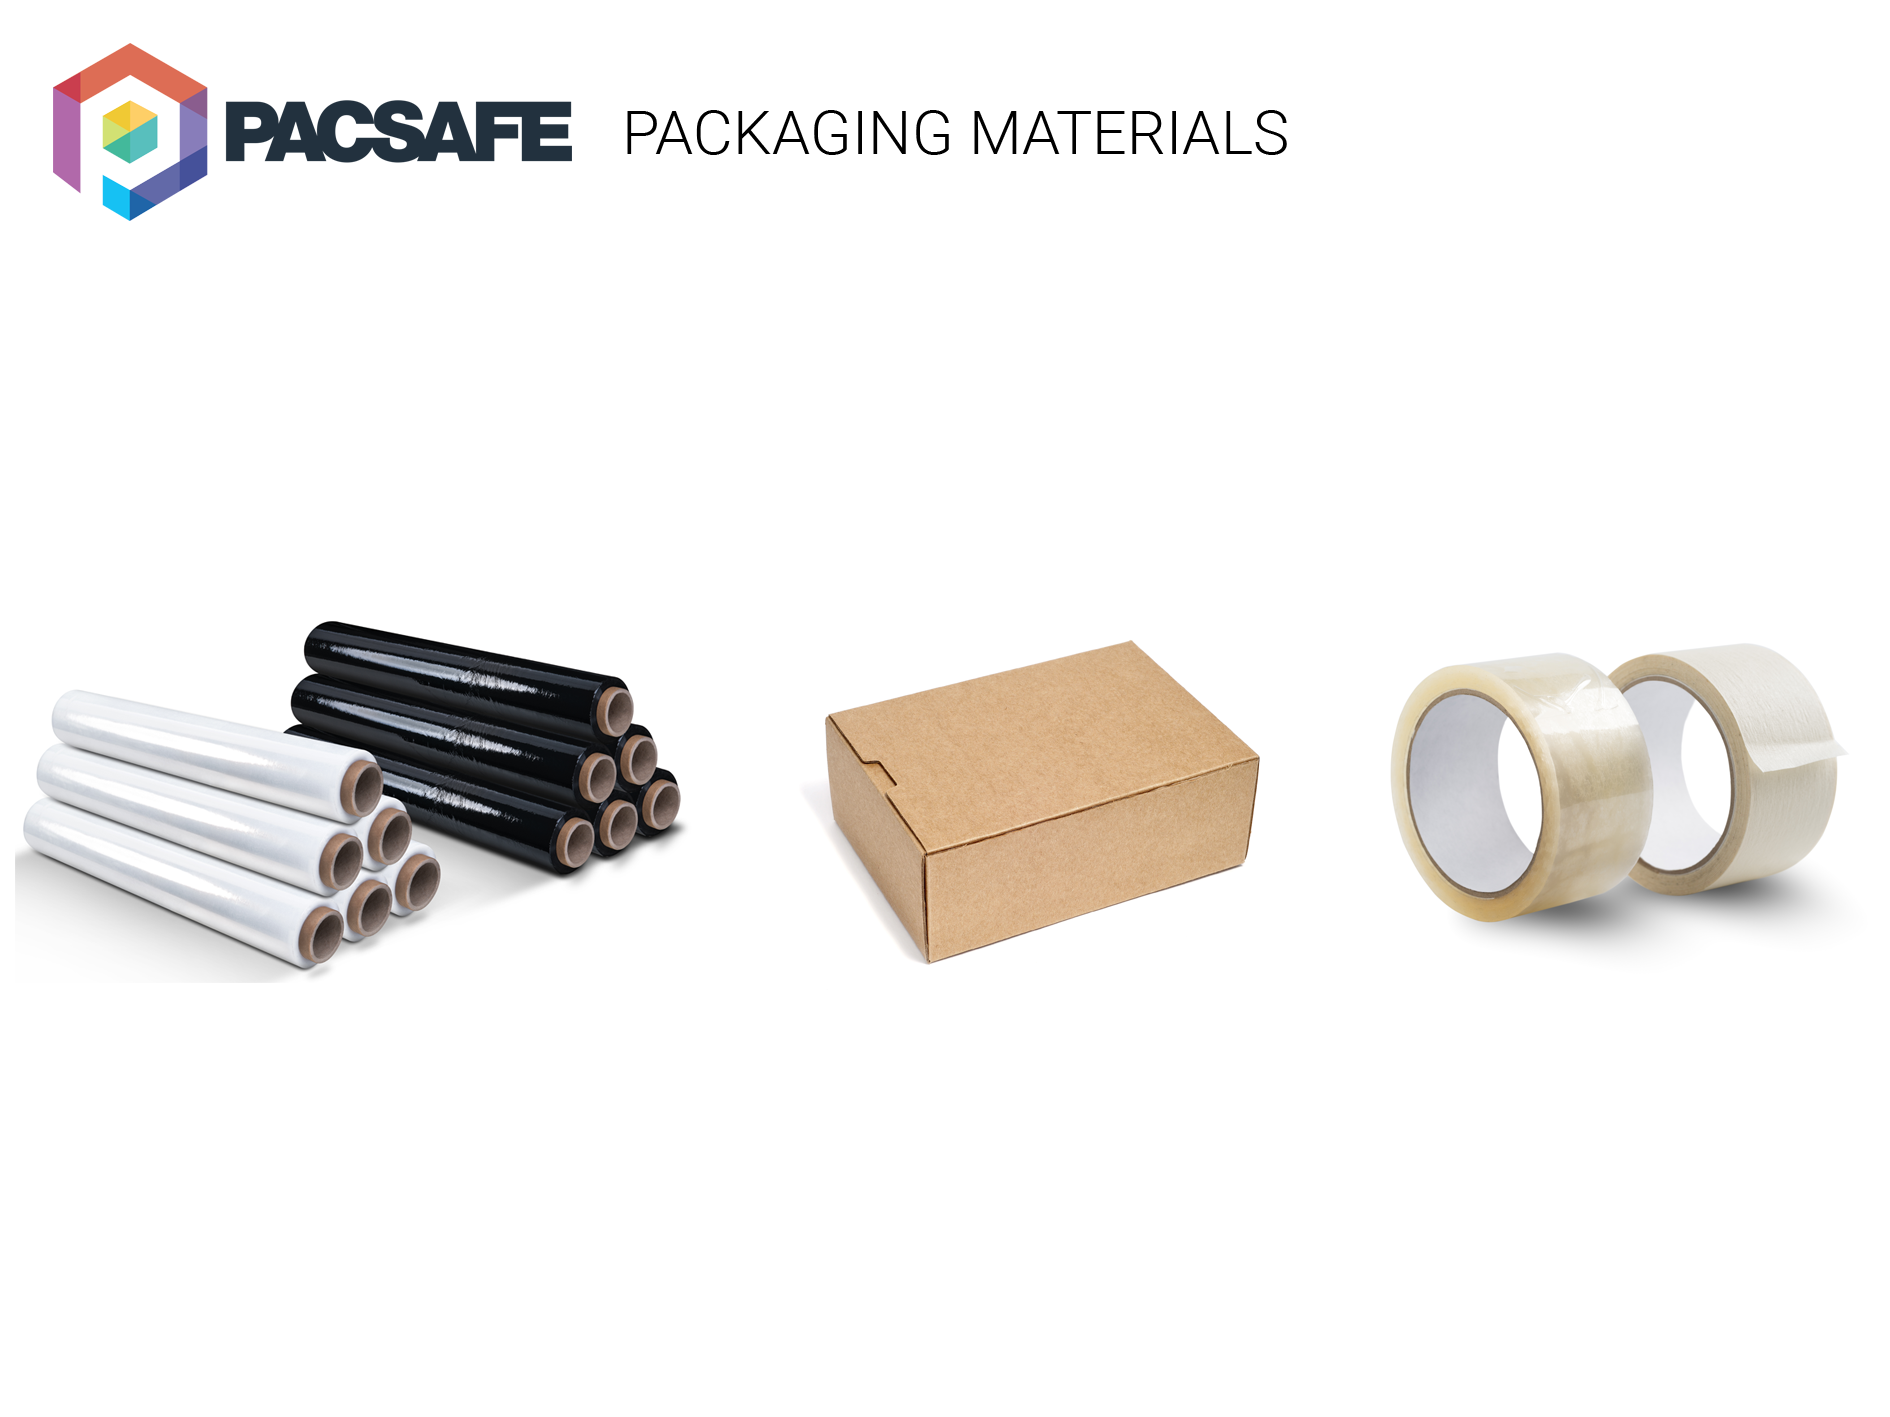 Packaging Materials Image